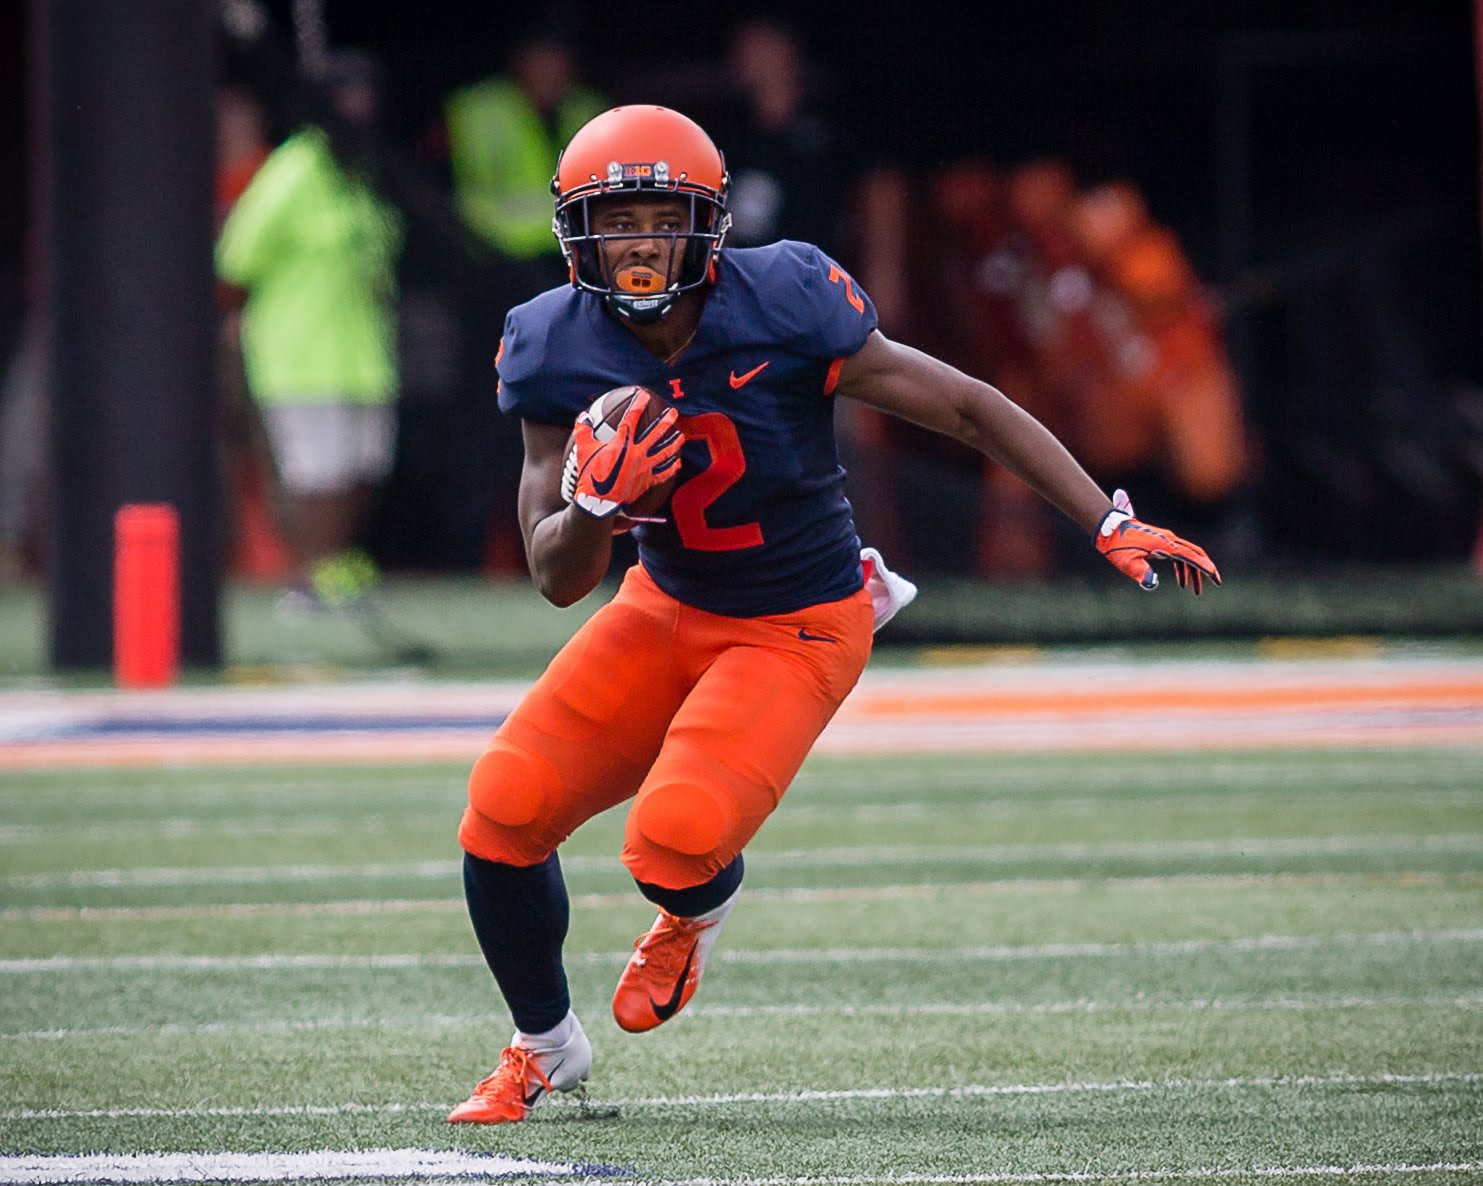 Illinois running back Reggie Corbin (2) runs with the ball during the game against Kent State at Memorial Stadium on Saturday, Sept. 1, 2018. The Illini won 31-24.